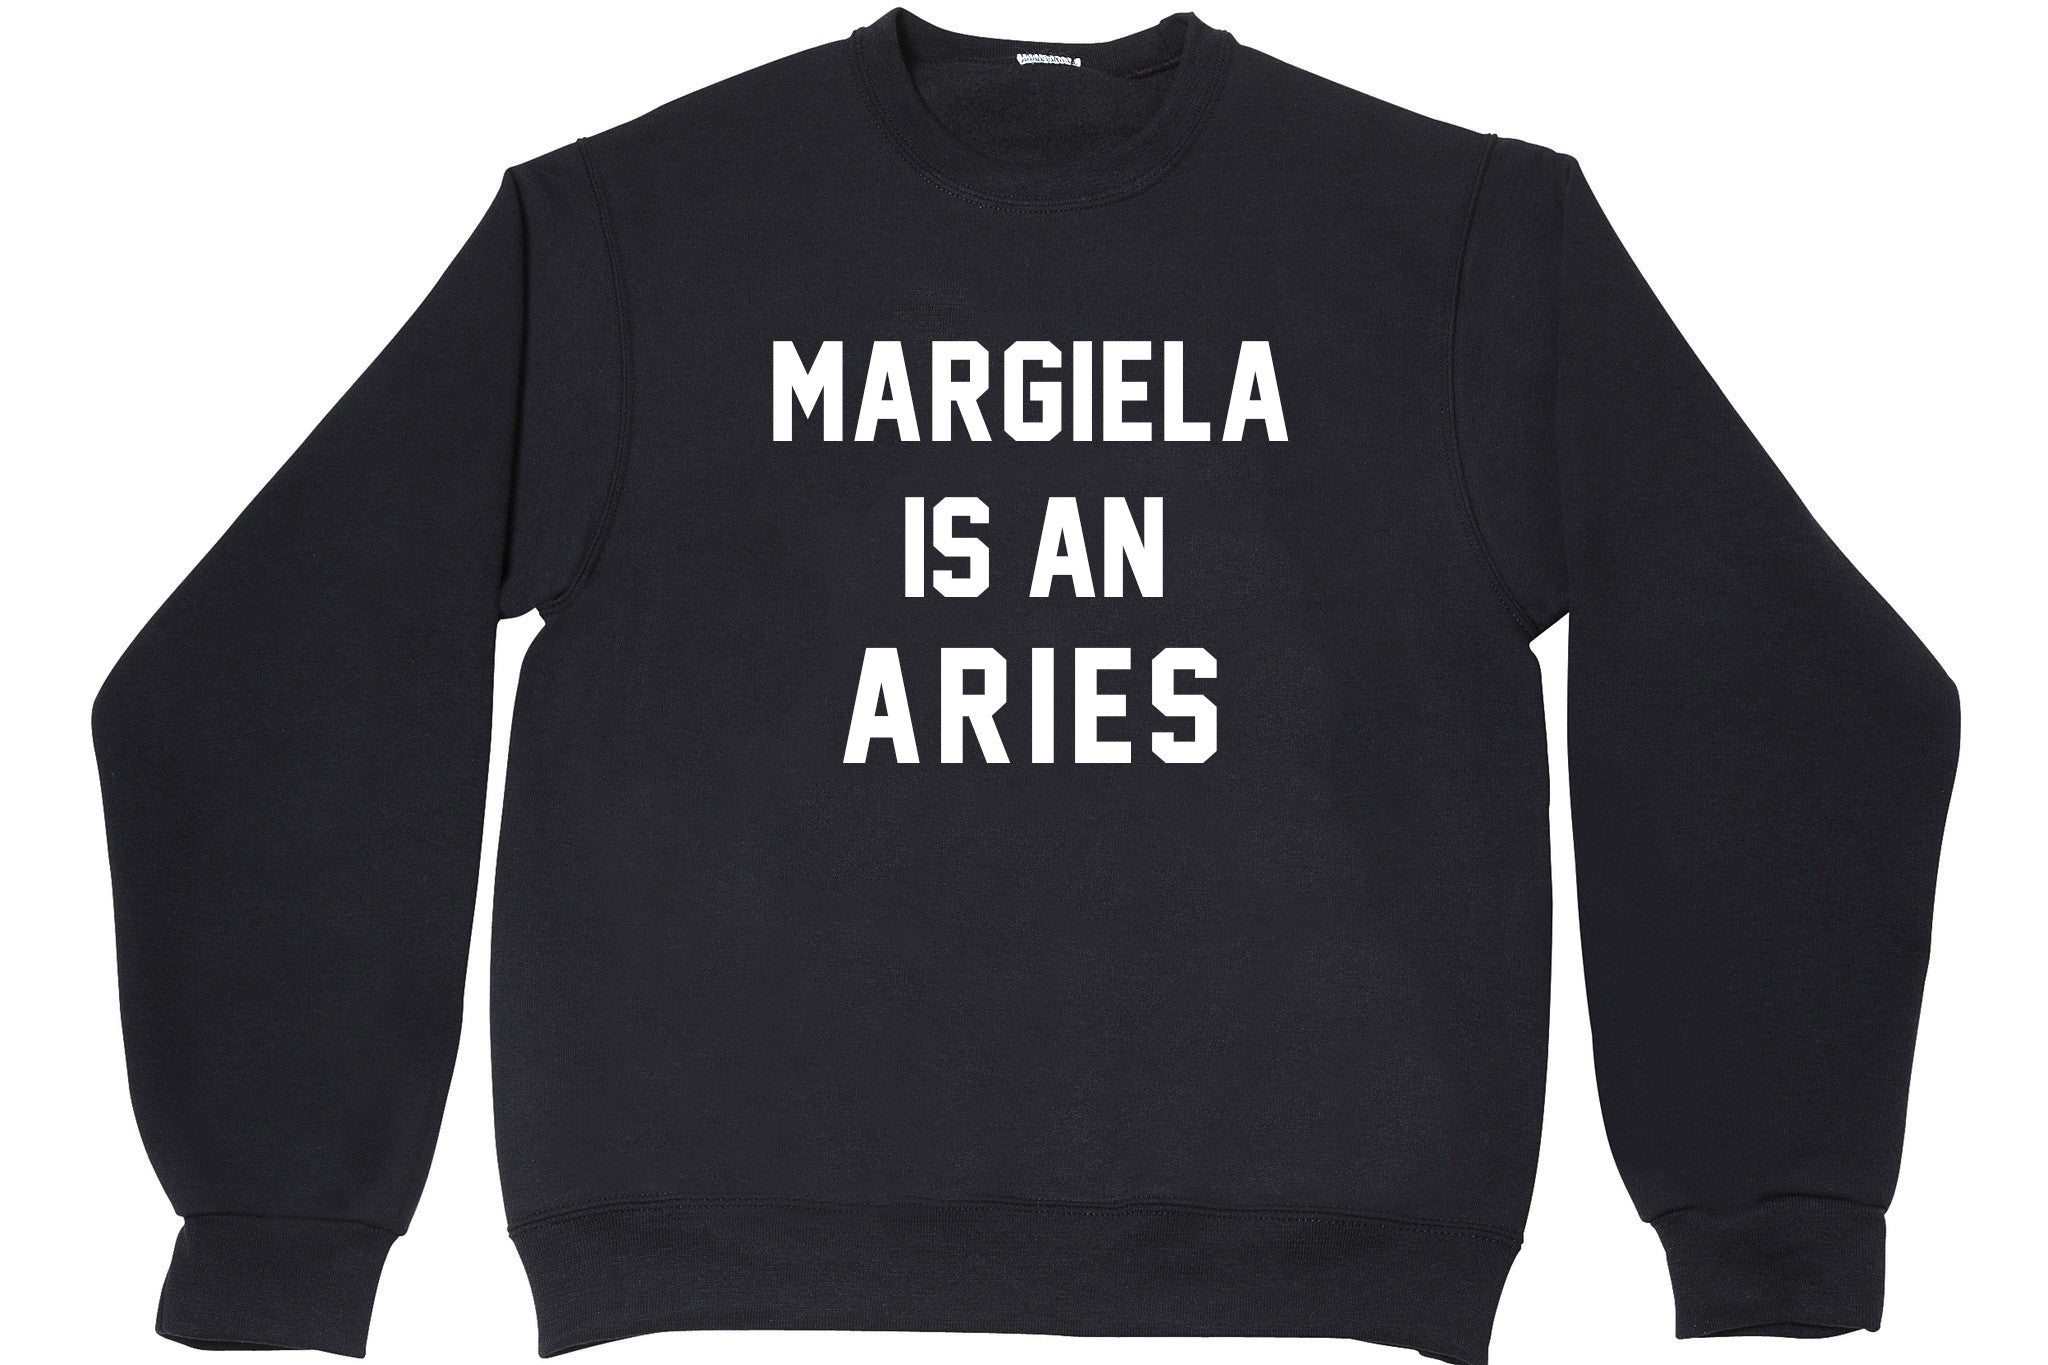 MARGIELA IS AN ARIES